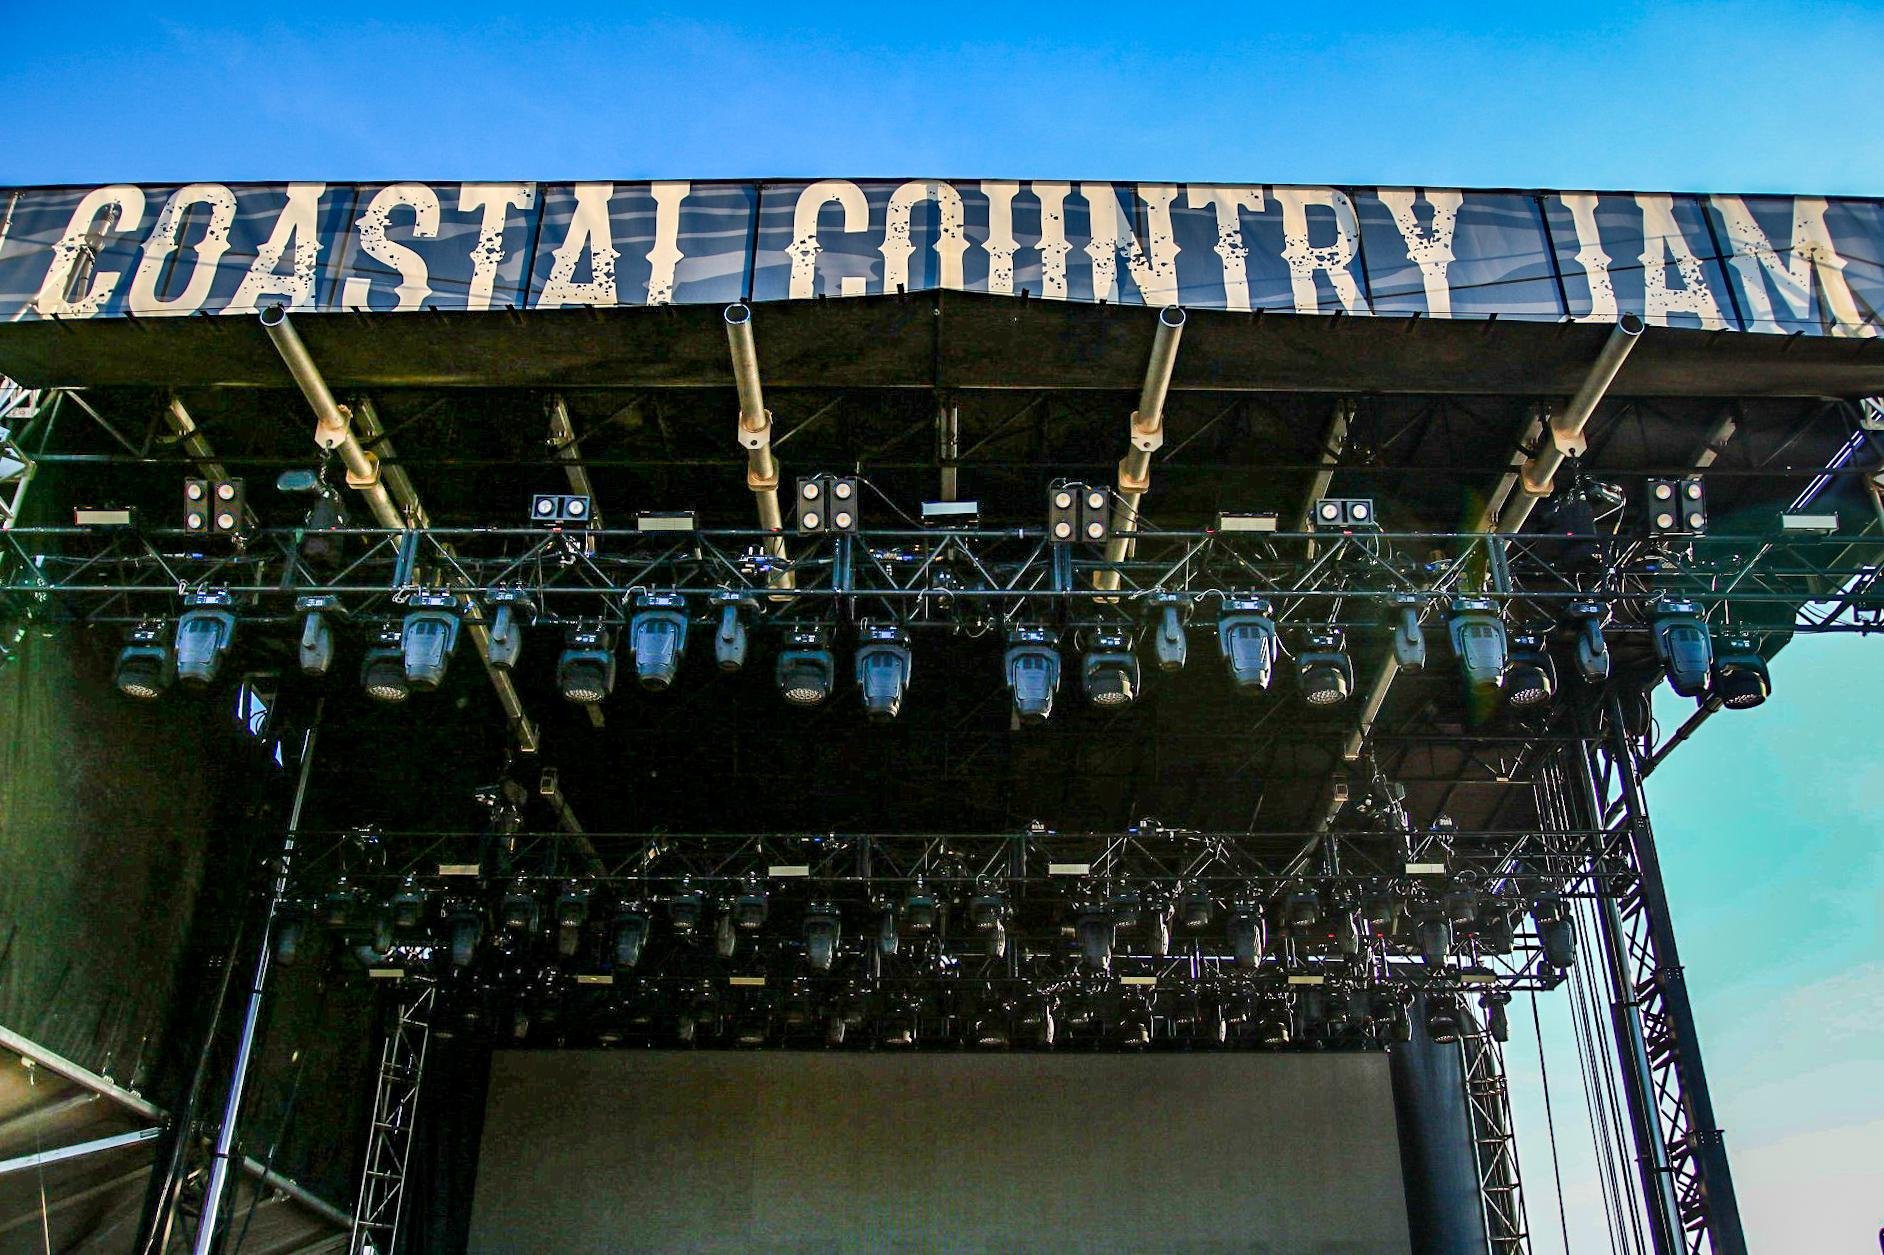 Chauvet robe elation stage country